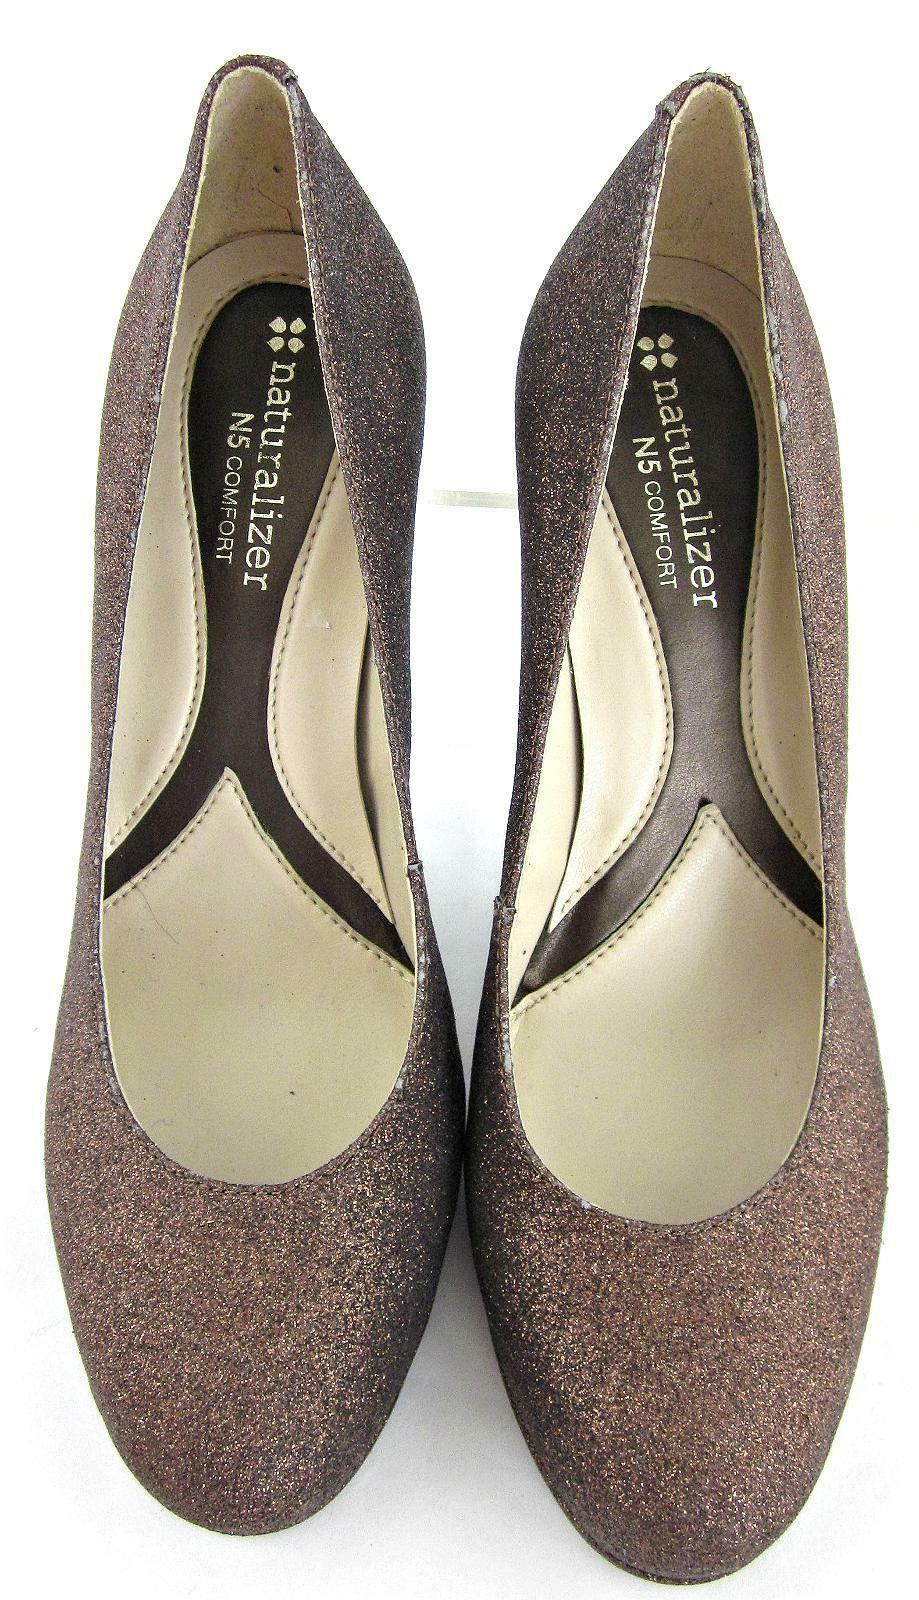 NEW  Dress Naturalizer 'Lennox' Round Toe Dress  Pumps Copper Glitter Leather 6B a51f52